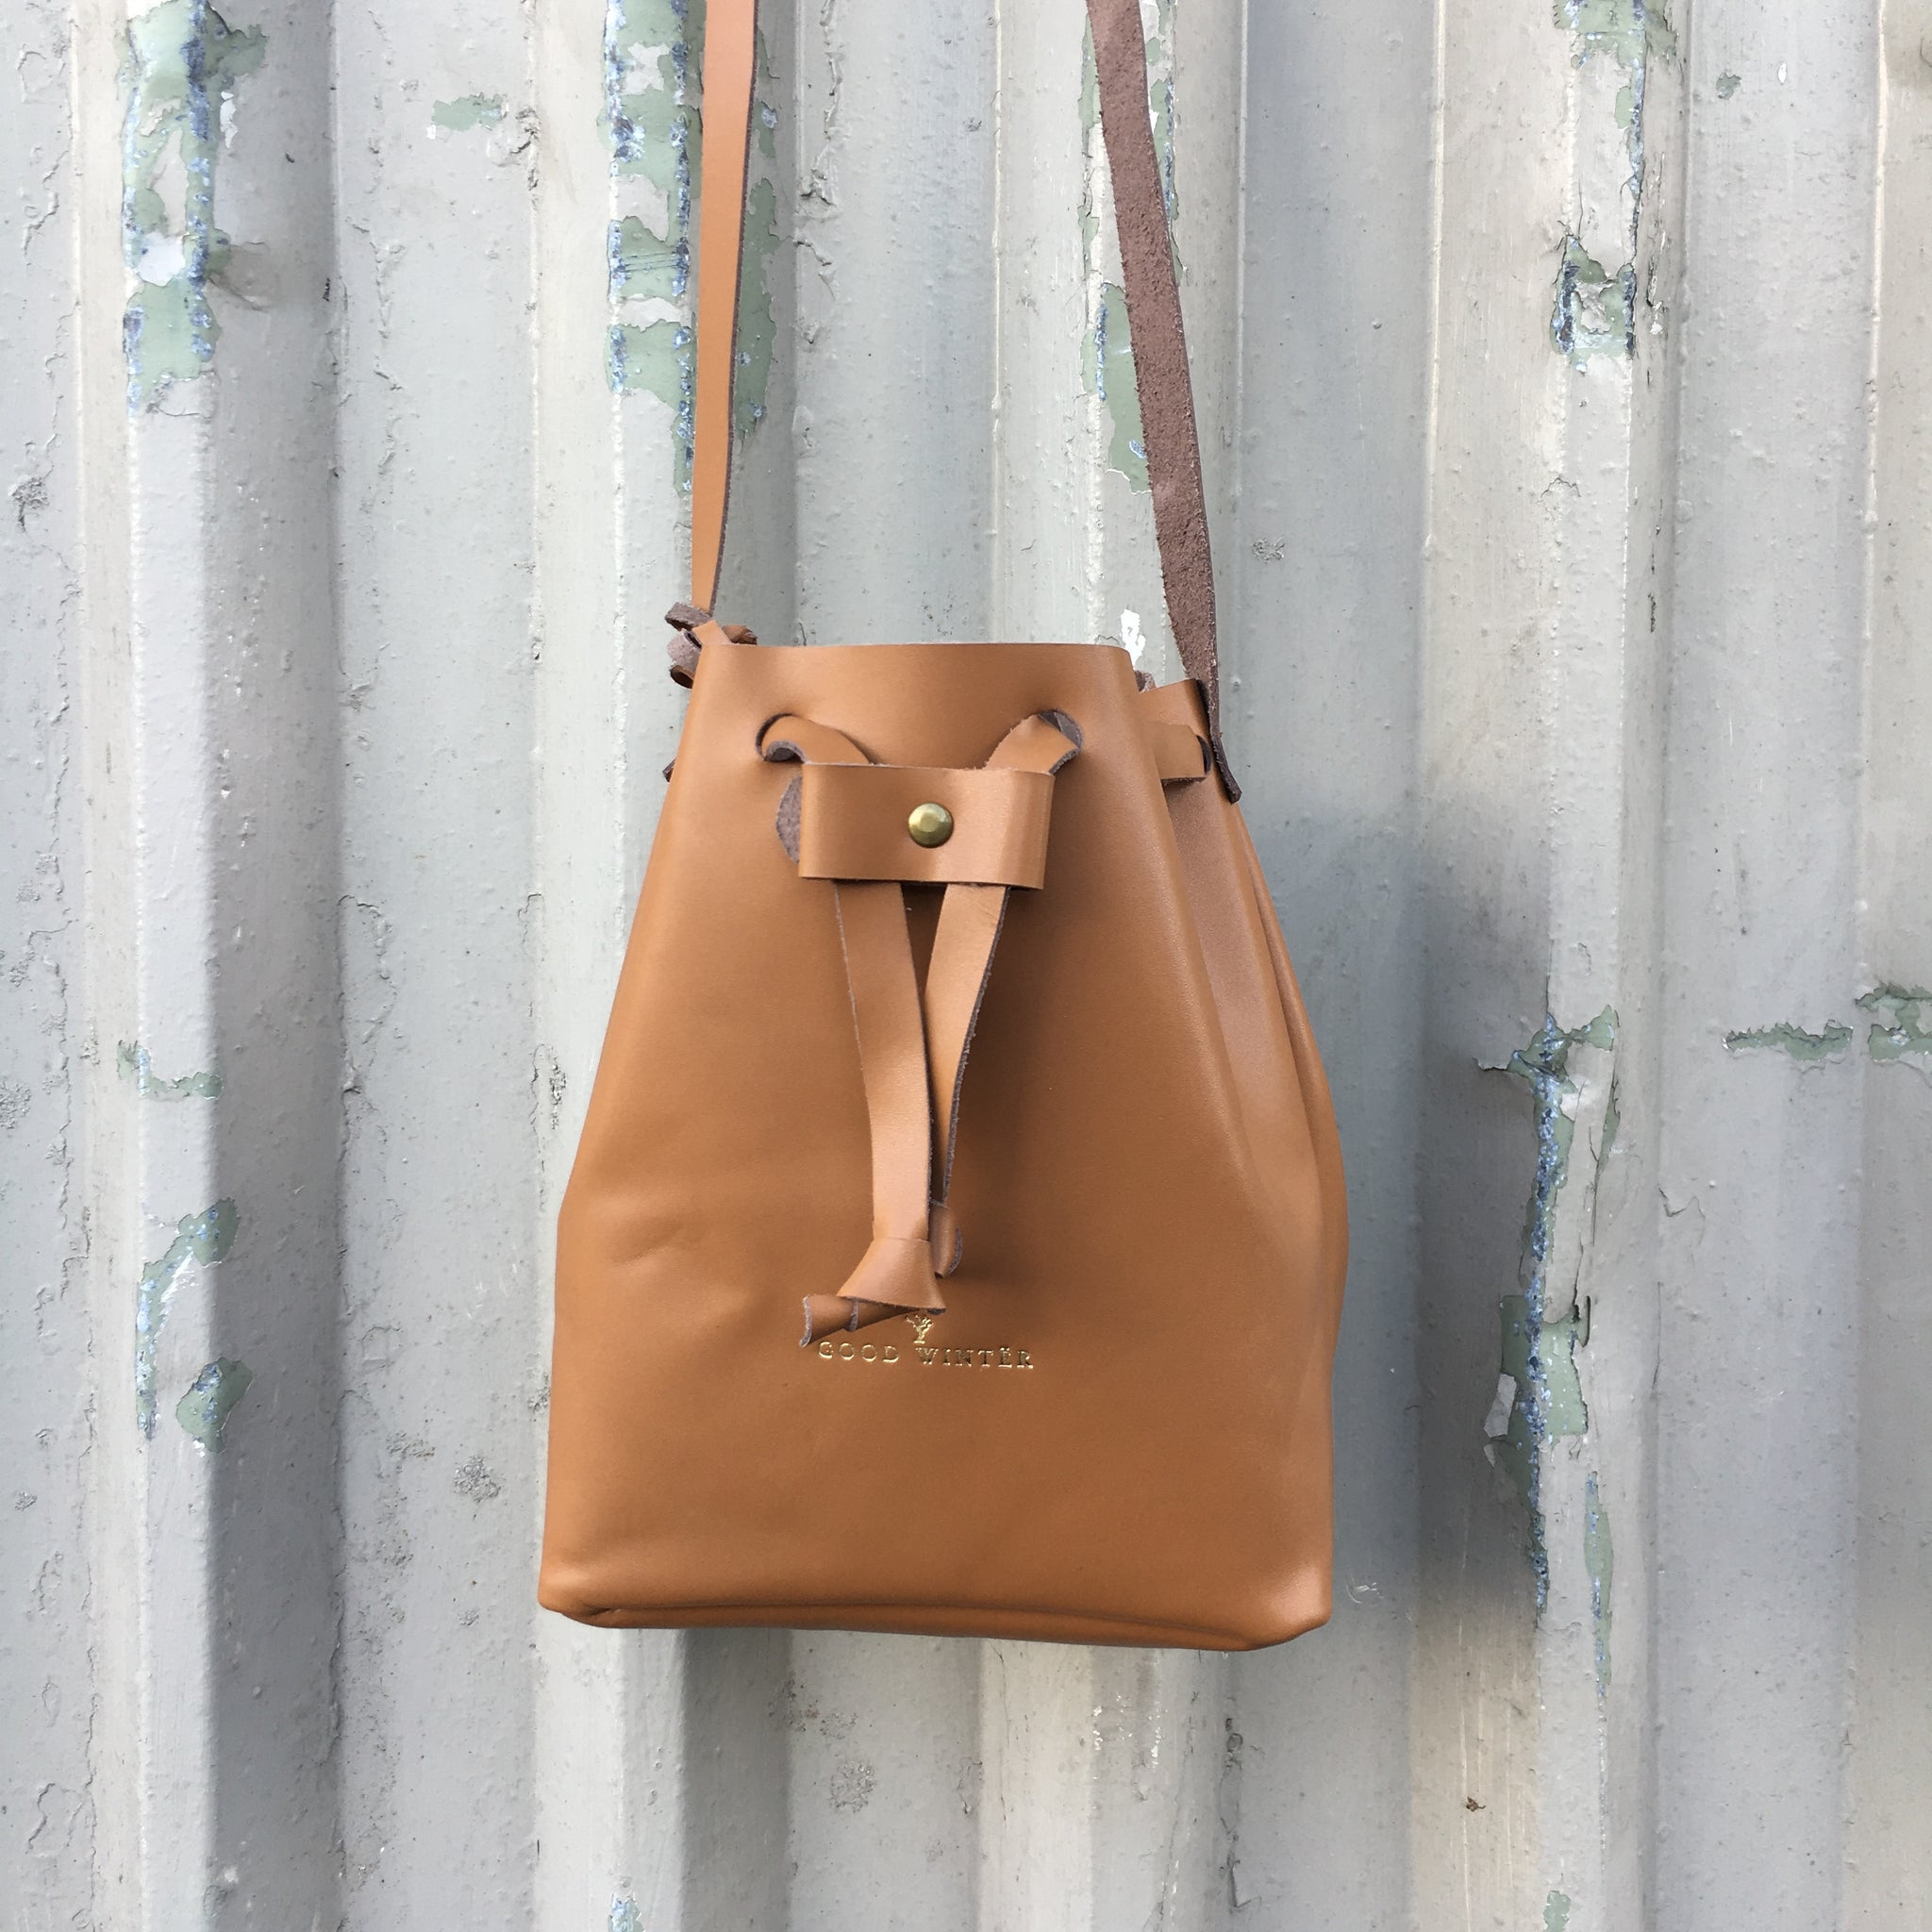 GW1 Bucket Bag Small Tan